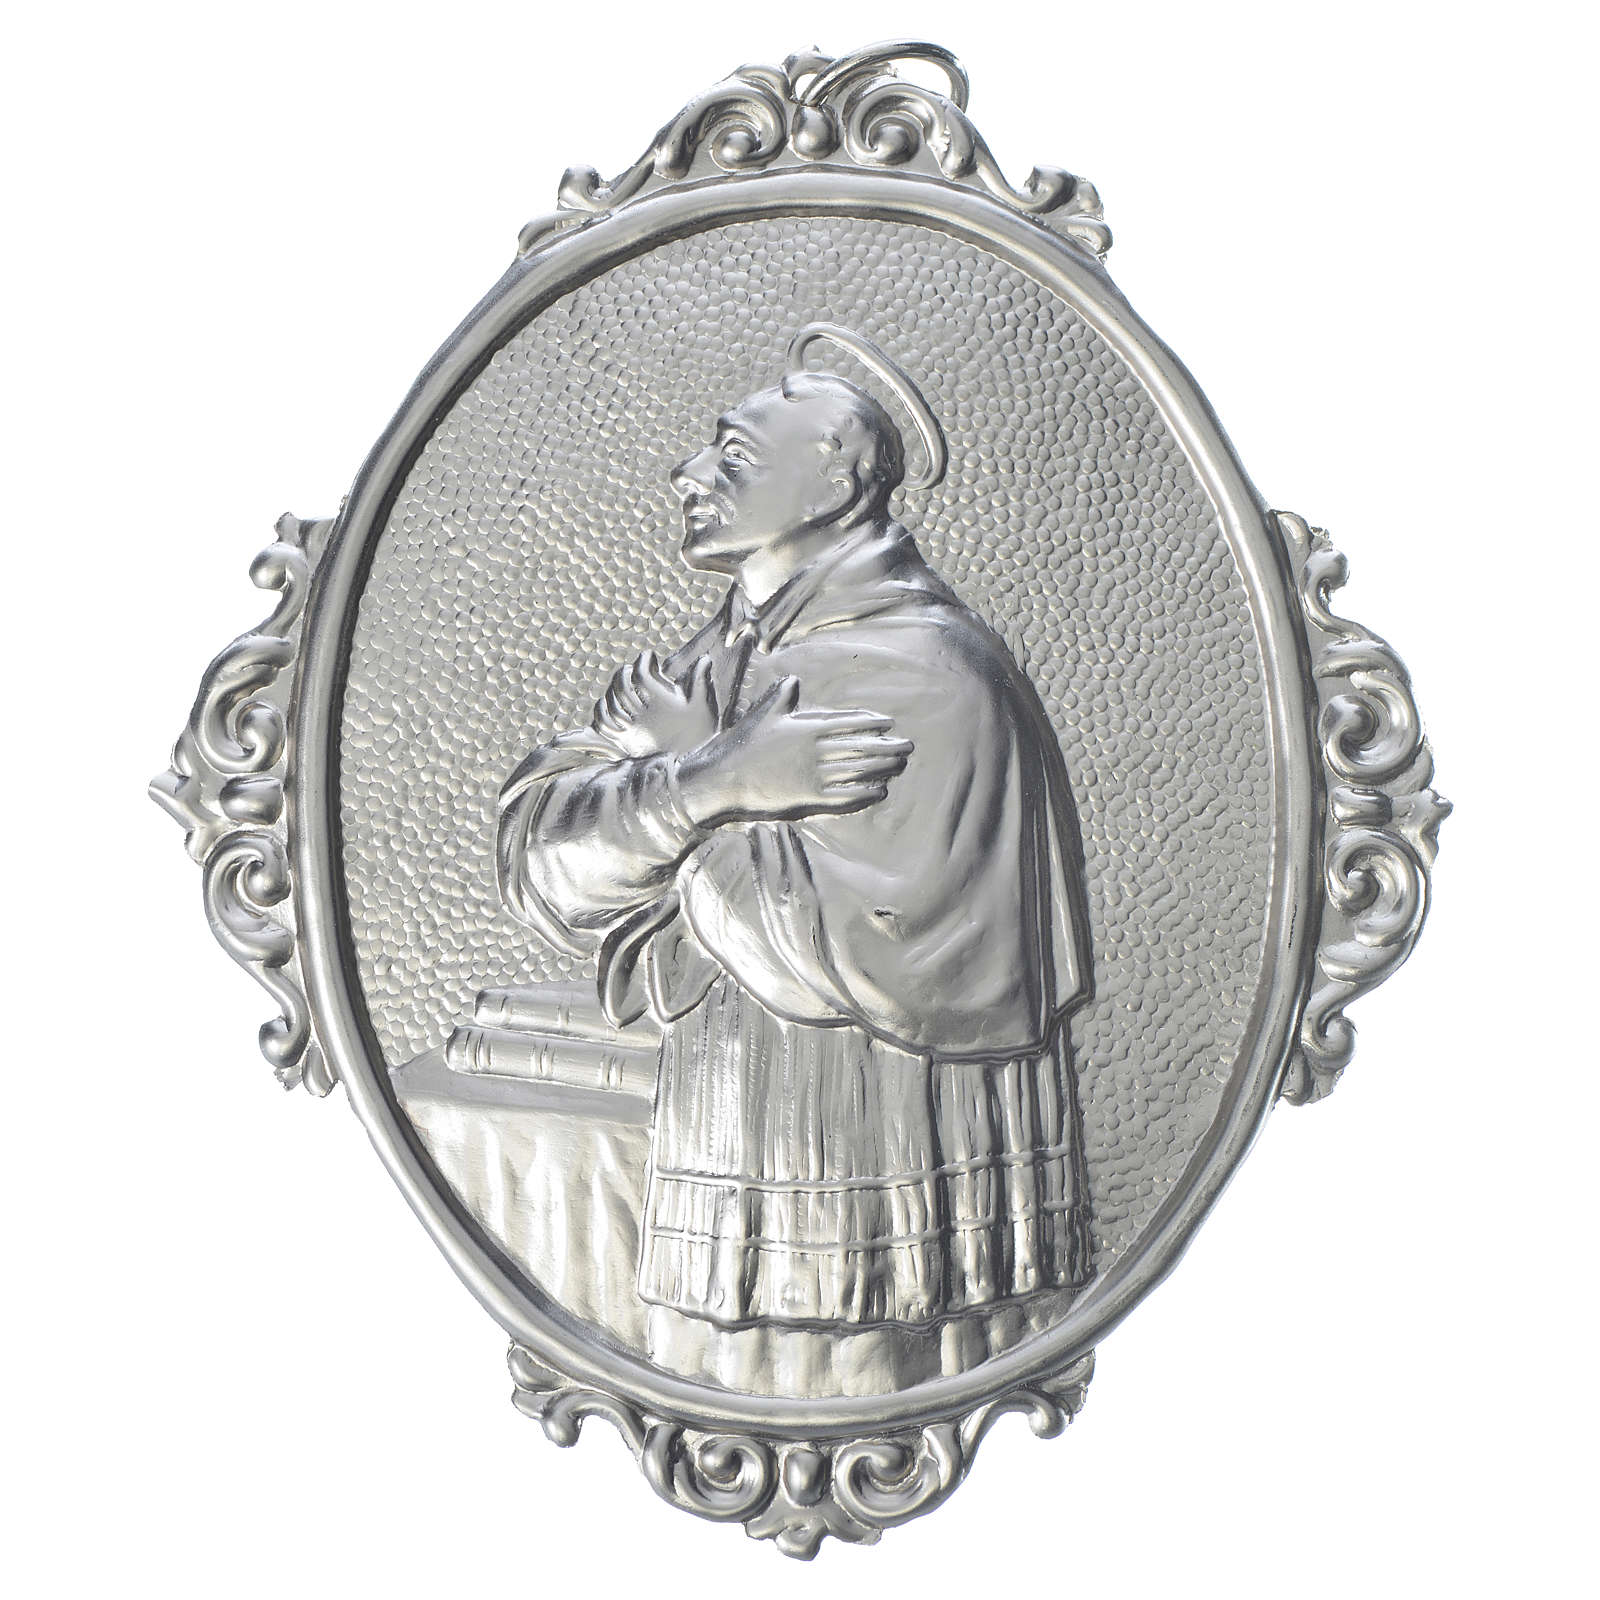 Confraternity Medal in brass, Saint Charles Borromeo 3